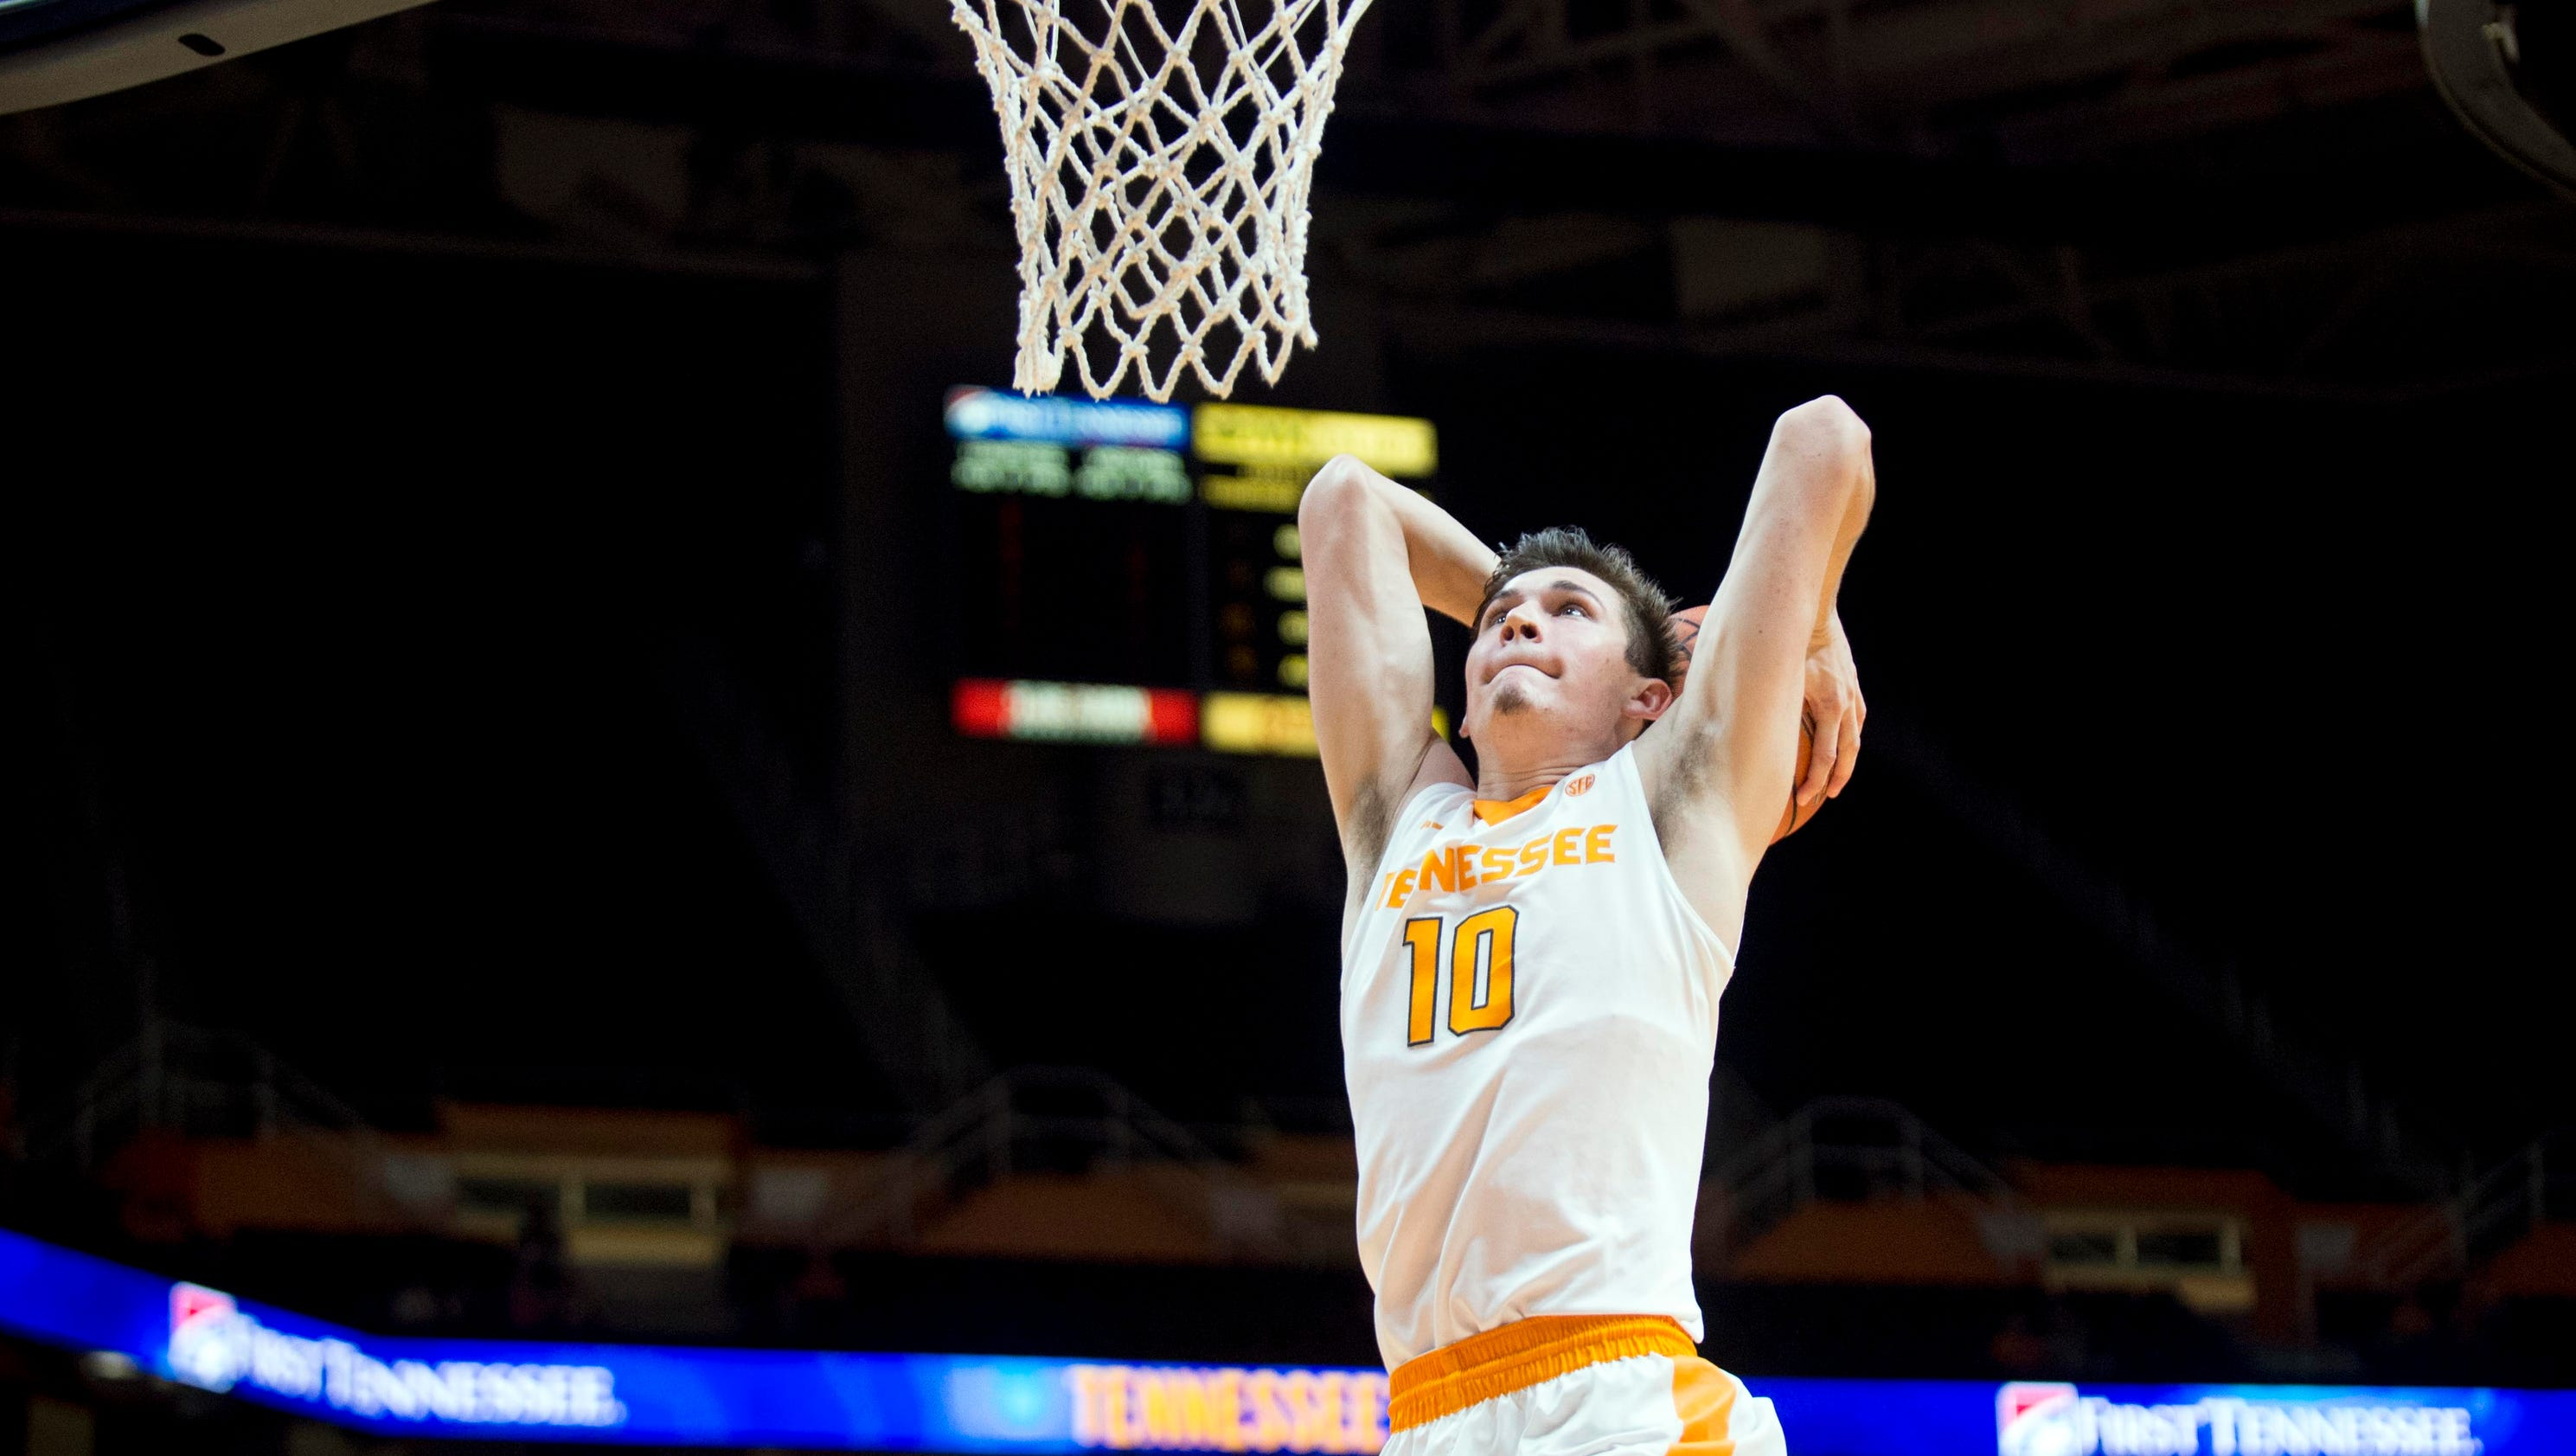 Vols post player John Fulkerson flips the energy switch